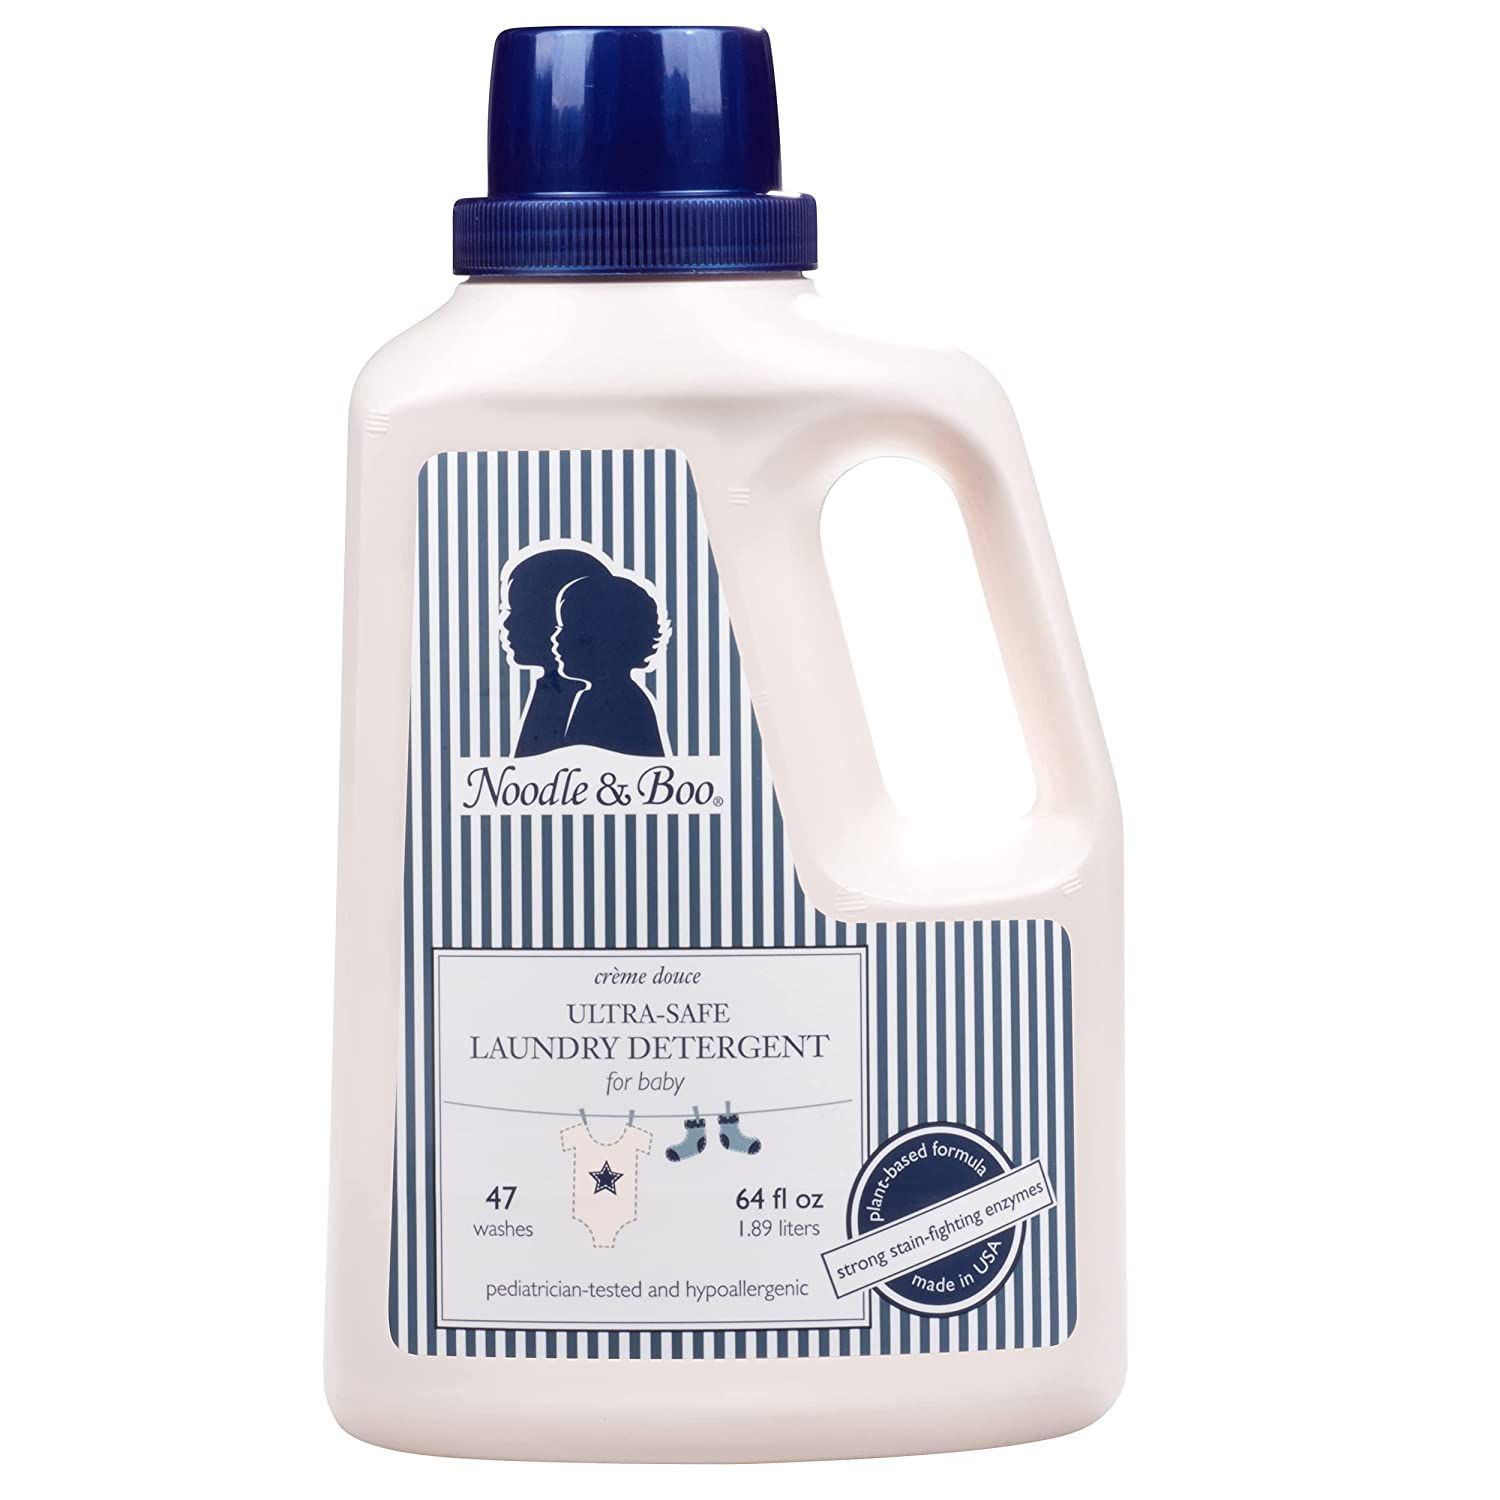 Noodle & Boo Ultra-Safe Laundry Detergent